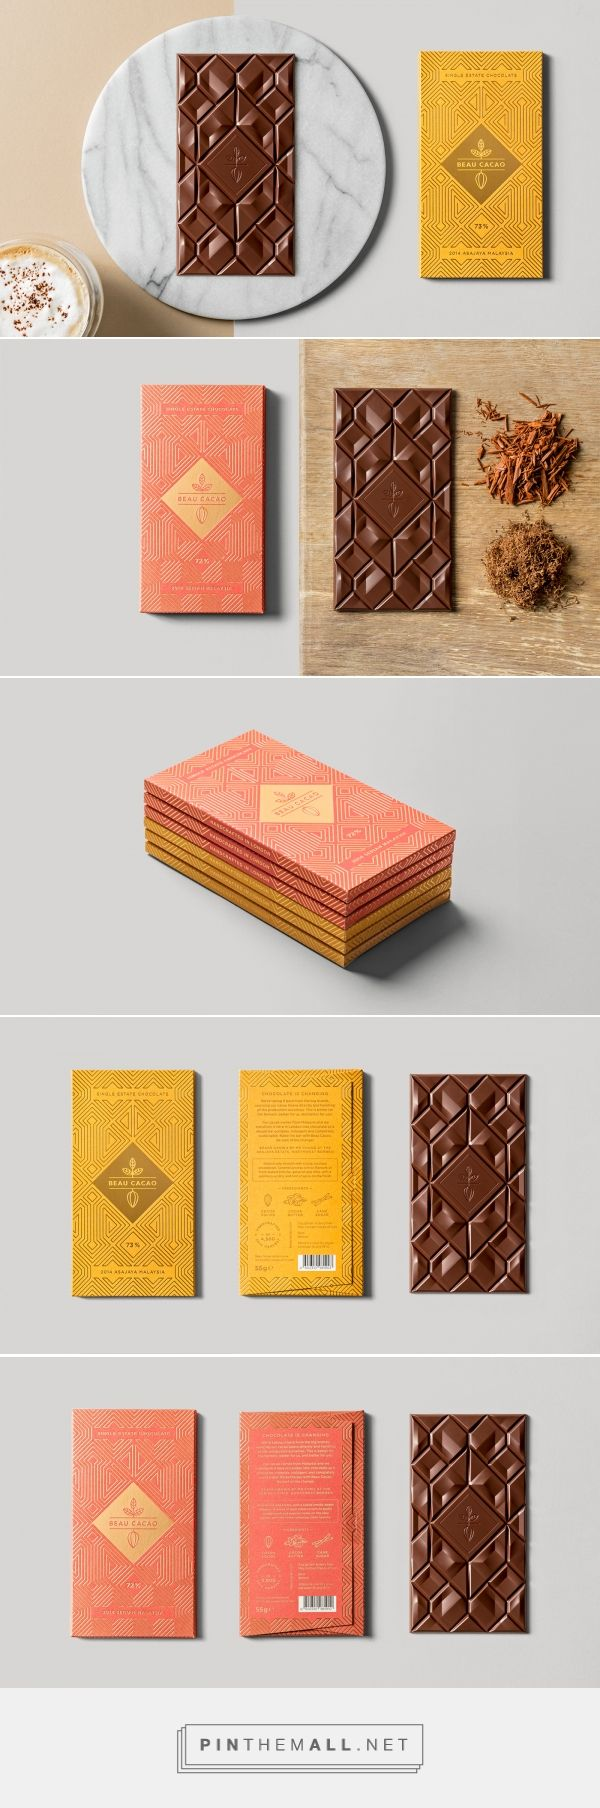 17 Best ideas about Chocolate Packaging on Pinterest | Artisan ...